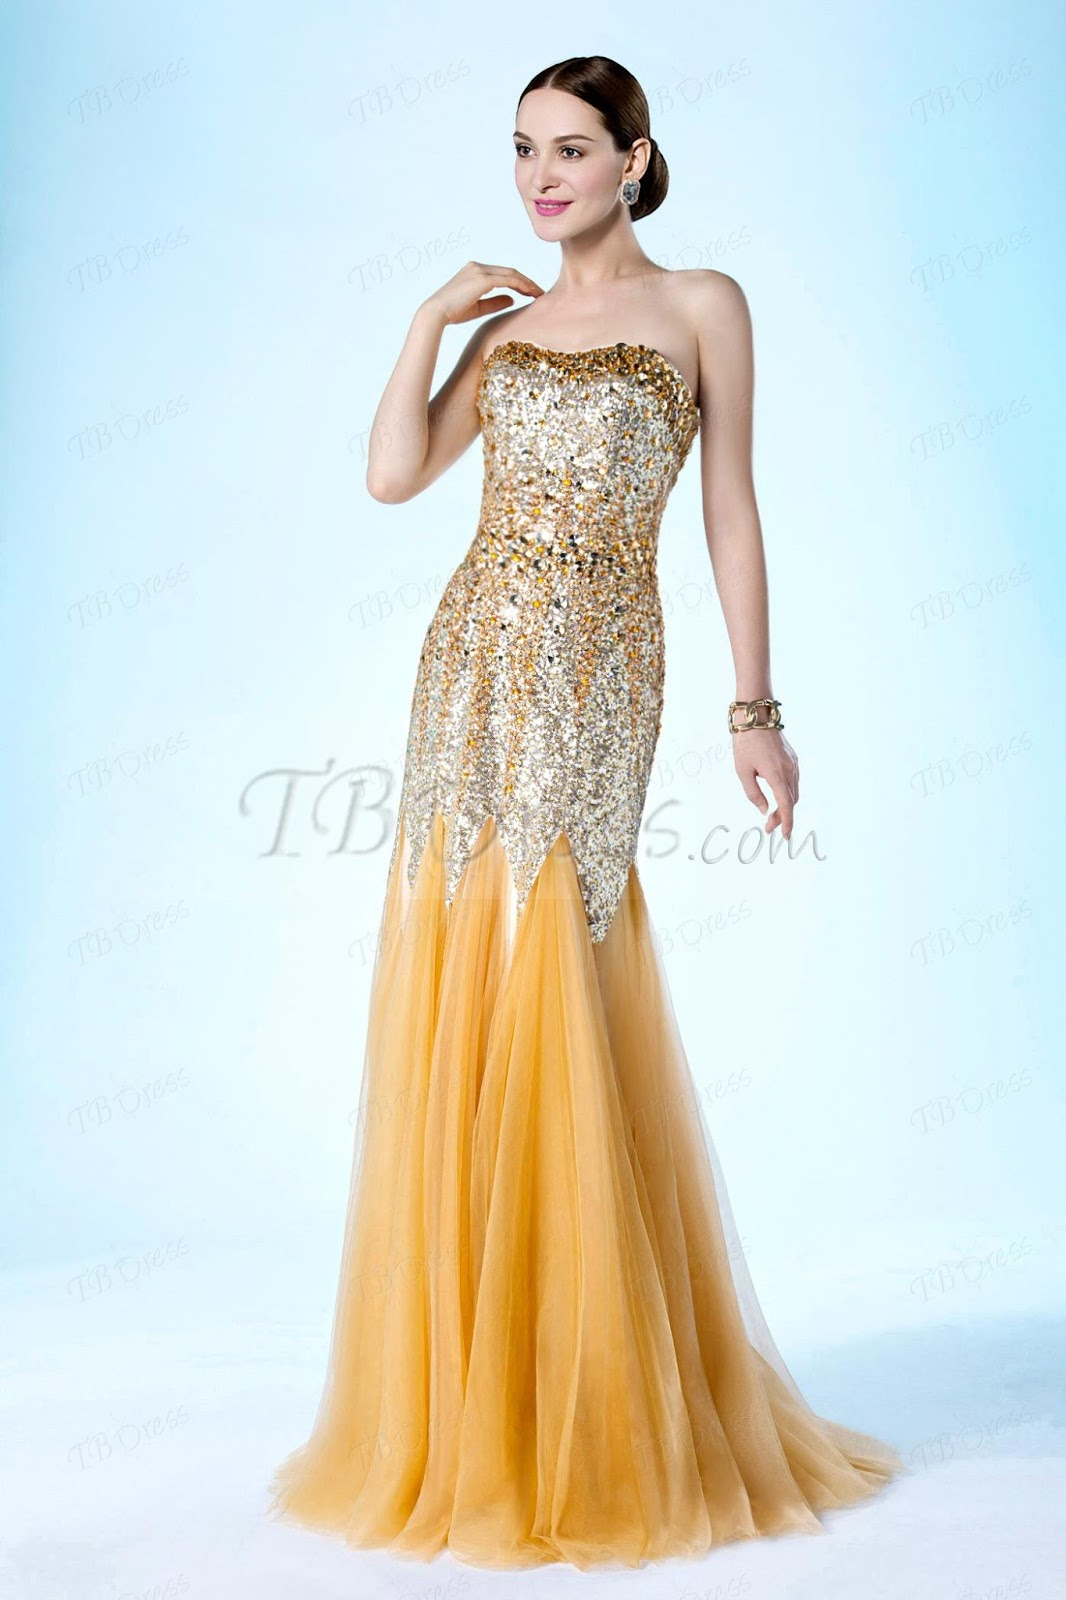 http://www.tbdress.com/product/Luxurious-Trumpet-Mermaid-Strapless-Sequins-And-Beading-Floor-Length-Evening-Prom-Dress-10770398.html